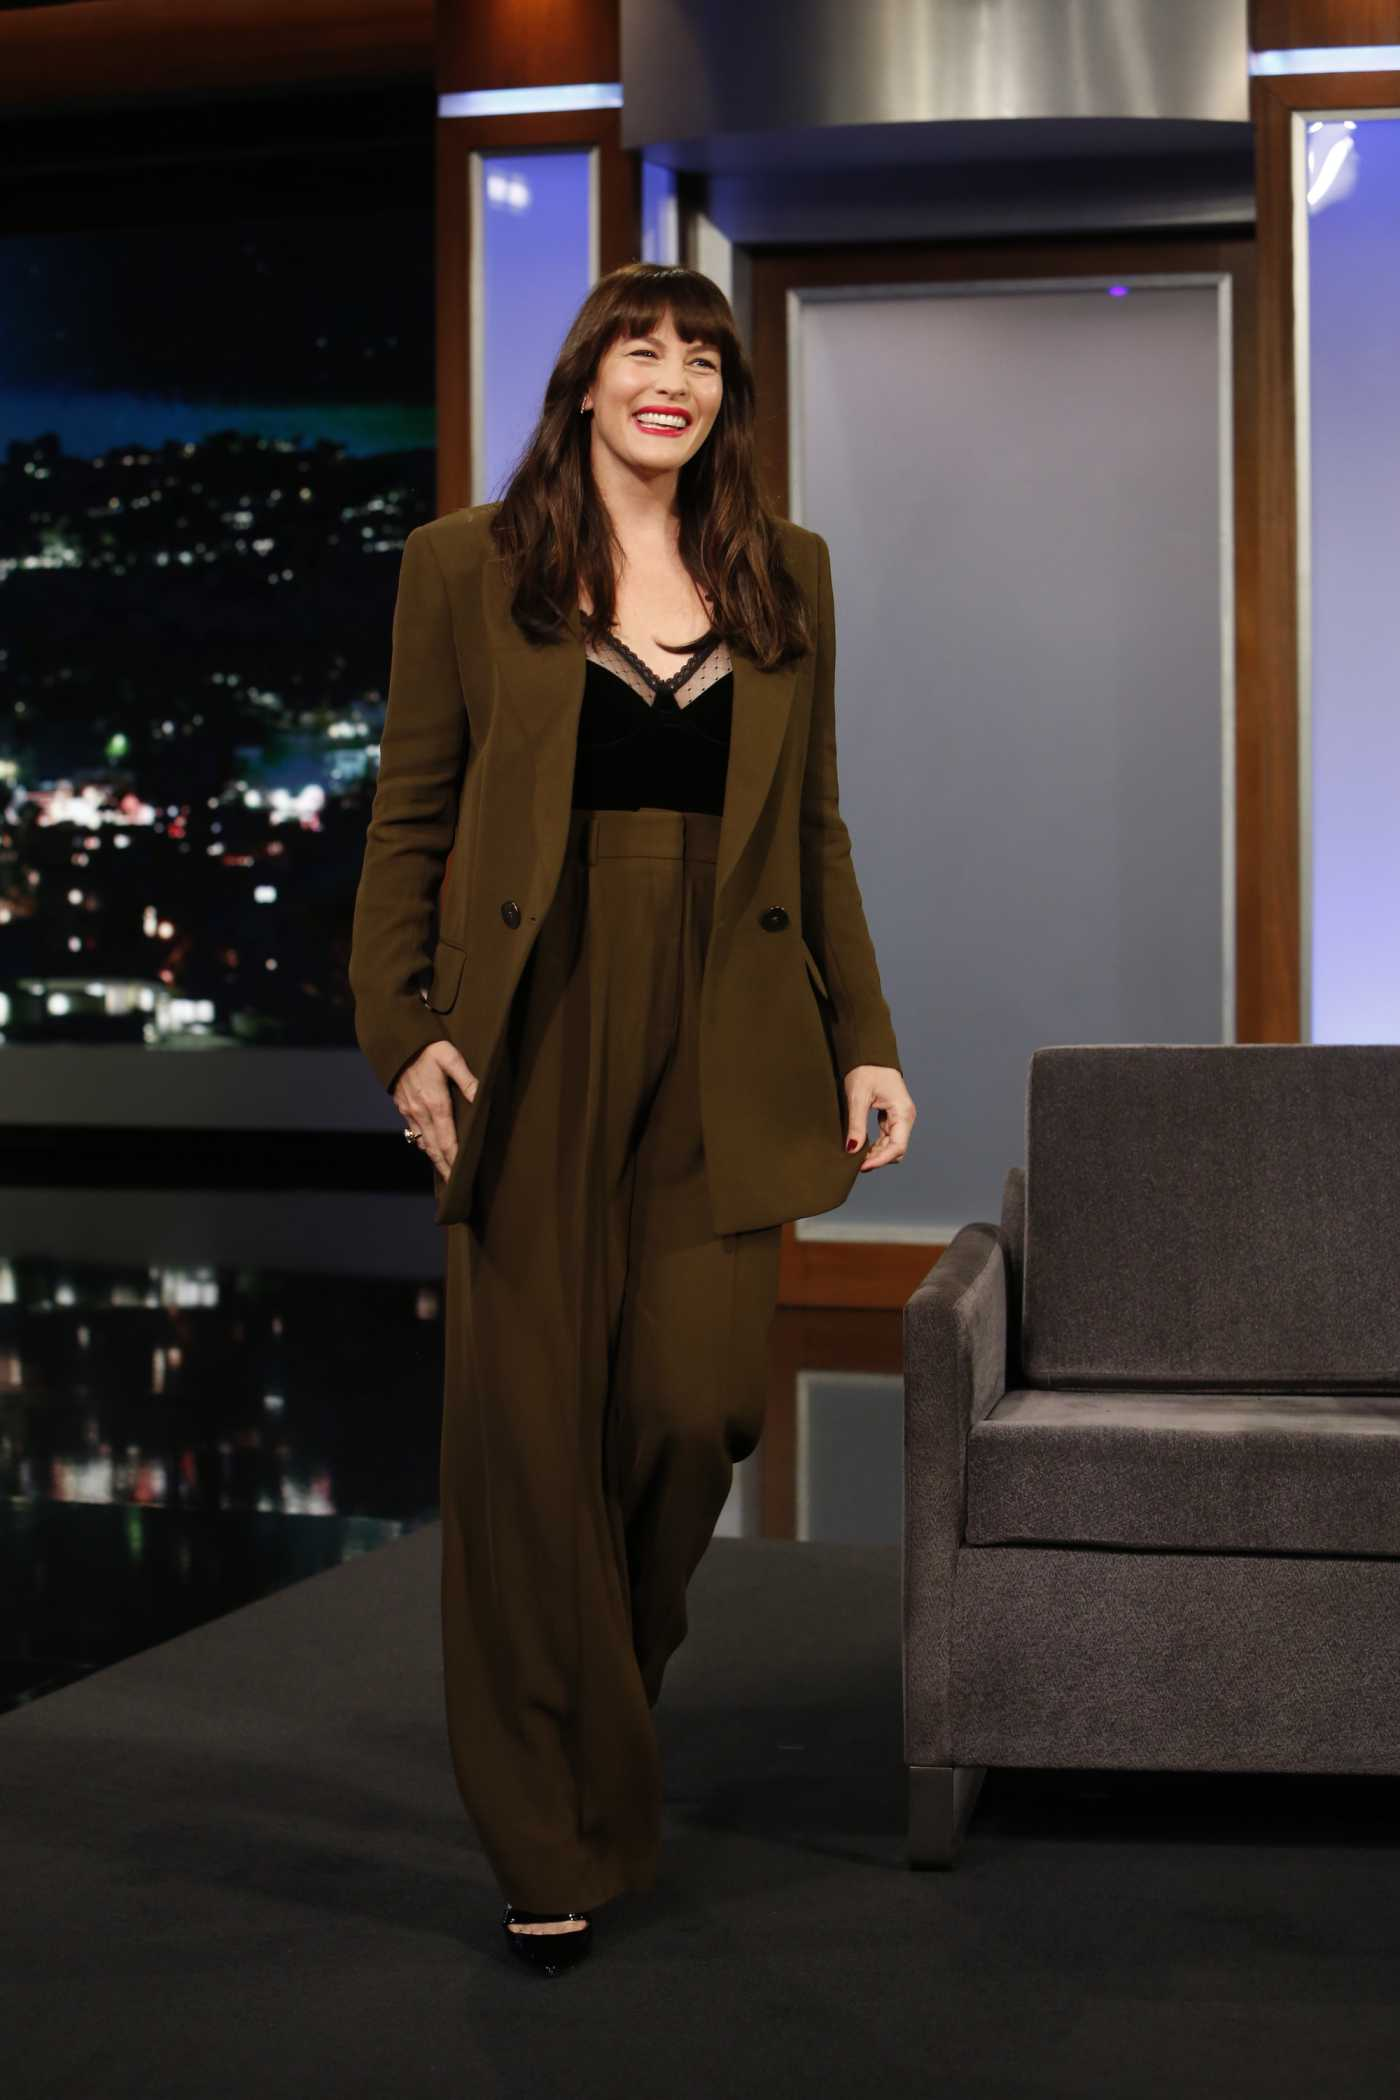 Liv Tyler in a Brown Suit Attends the Jimmy Kimmel Live in Los Angeles 01/21/2020